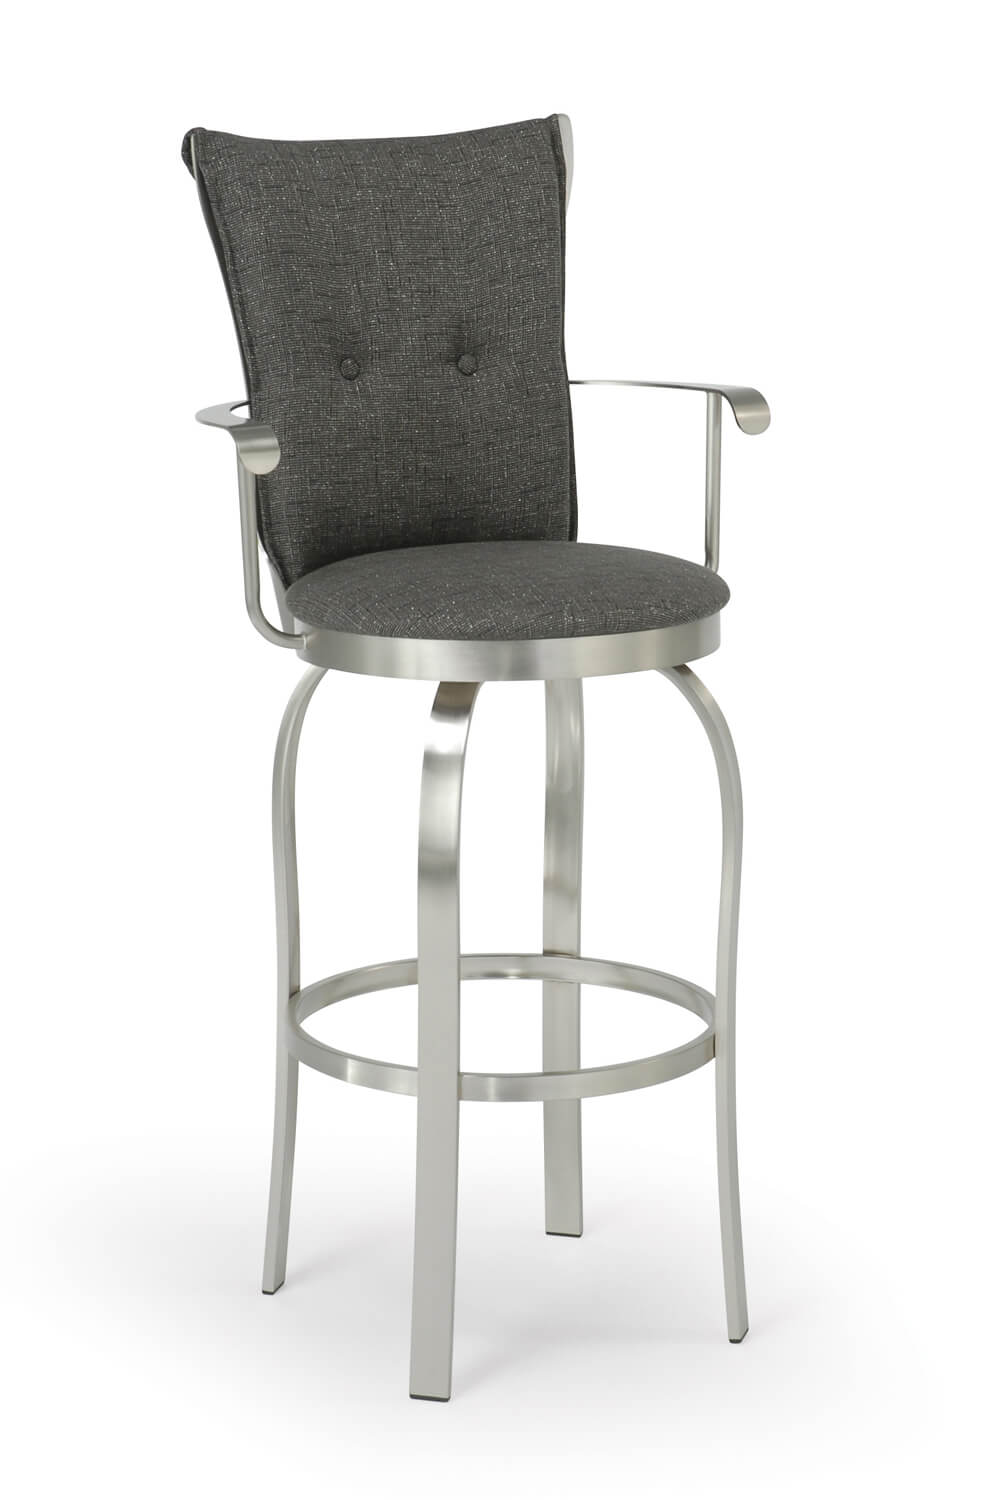 Buy Trica S Tuscany Luxury Swivel Arm Bar Stool In Leather